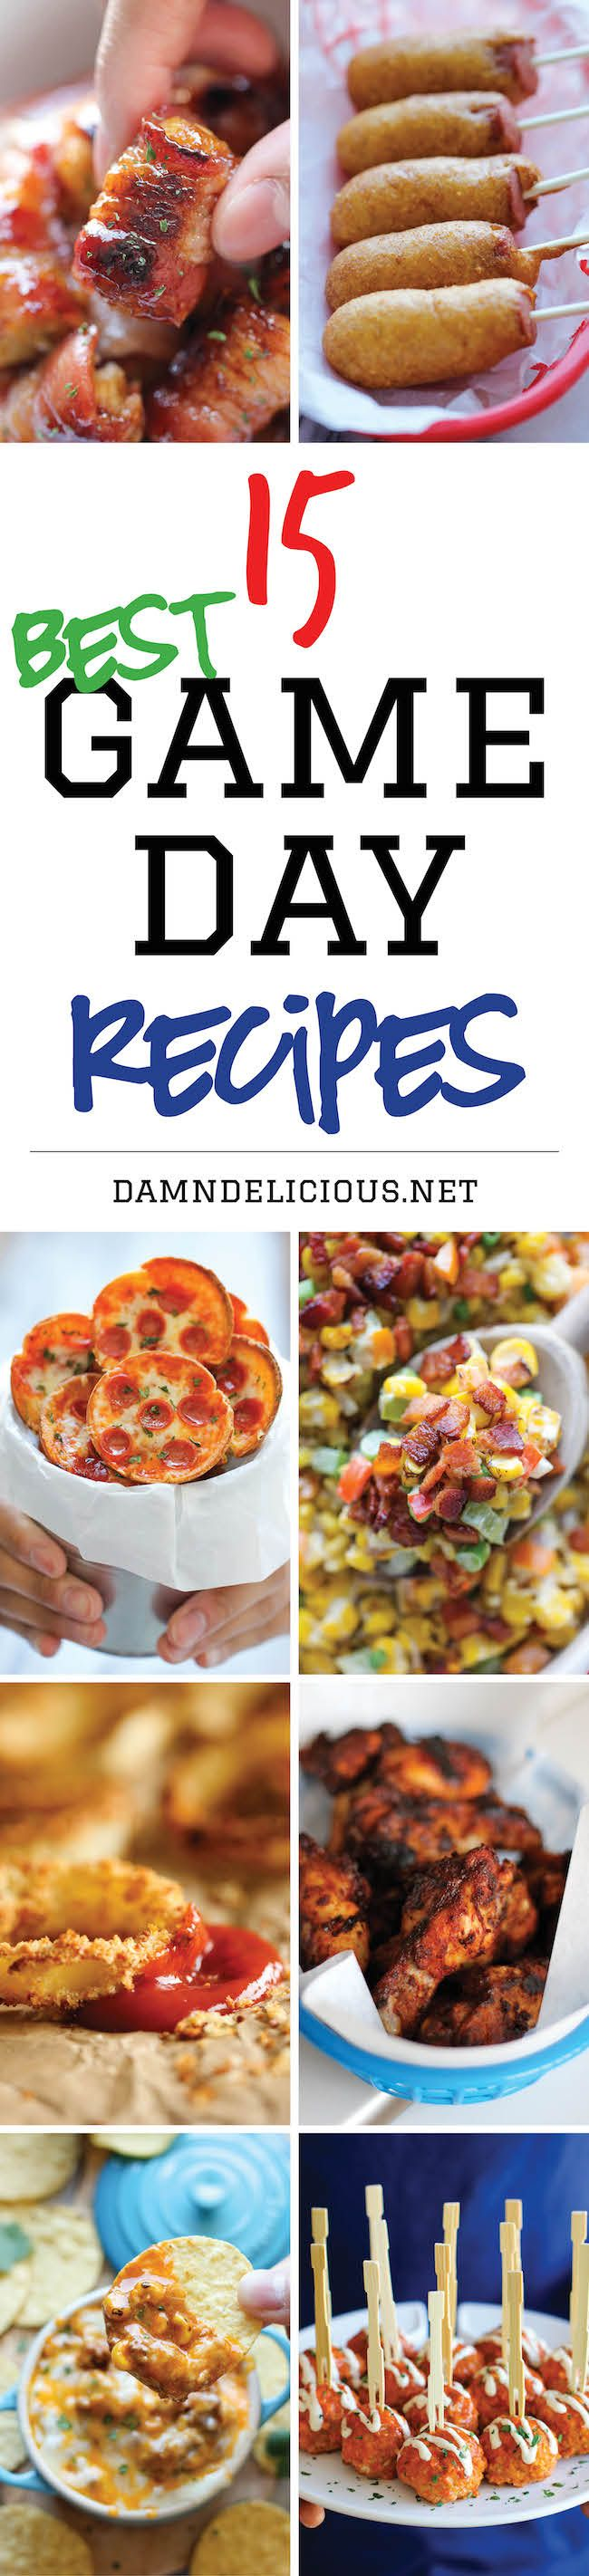 sportband recall 15 Best Game Day Recipes   The best and easiest recipes for game day  Just be sure to double the recipes because everyone will be begging for seconds